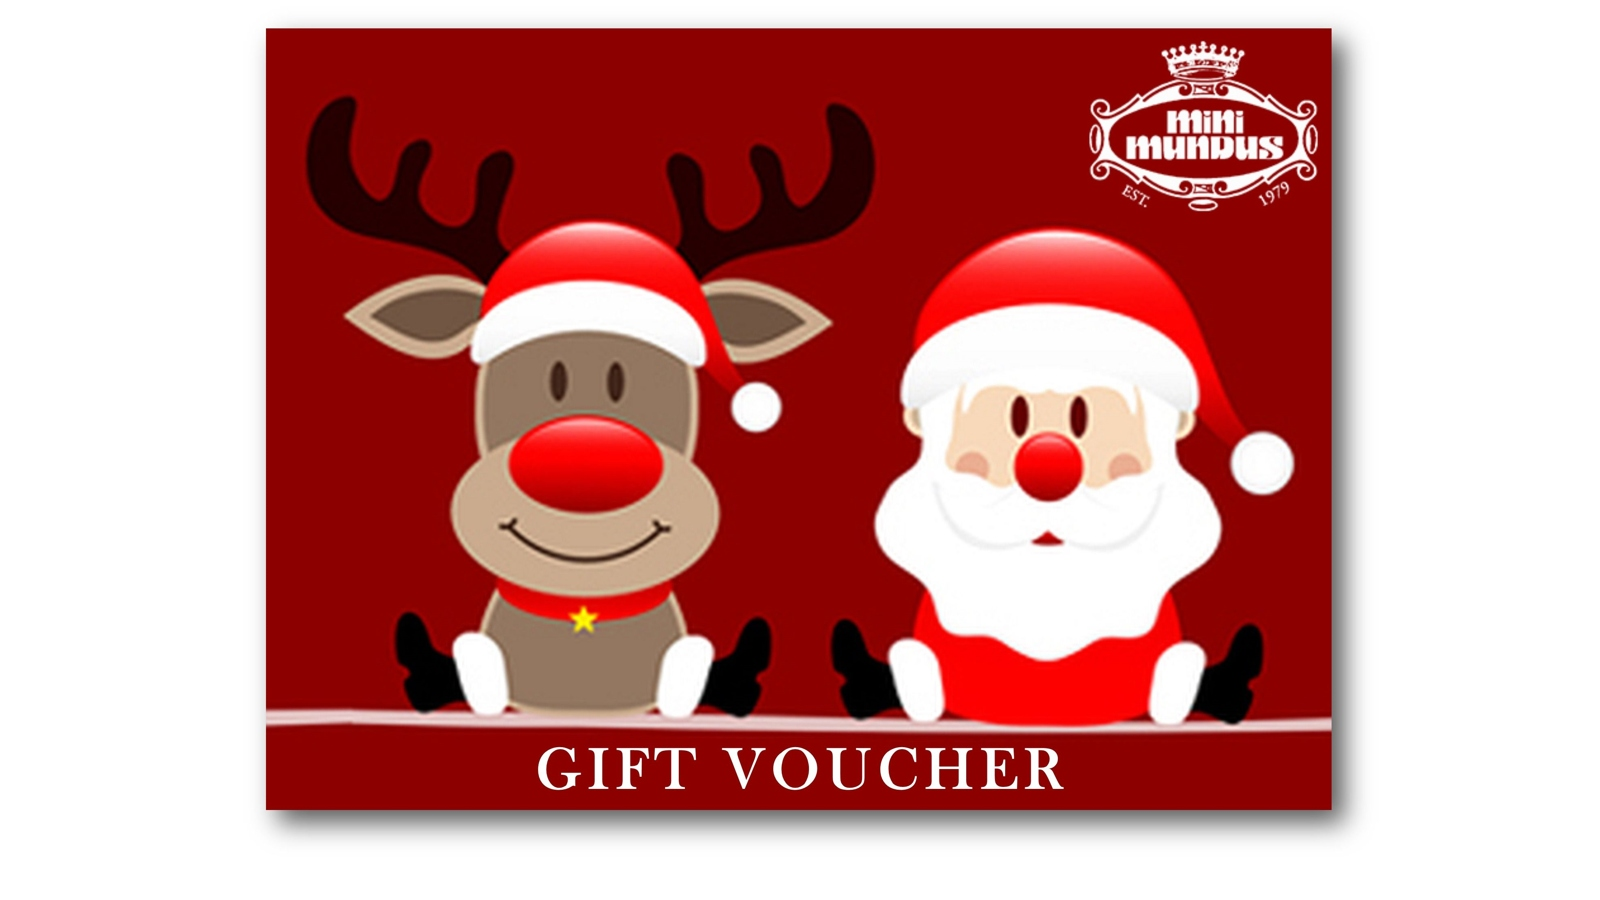 Gift vouchers for self-printing - Ordered today - Delivered today!